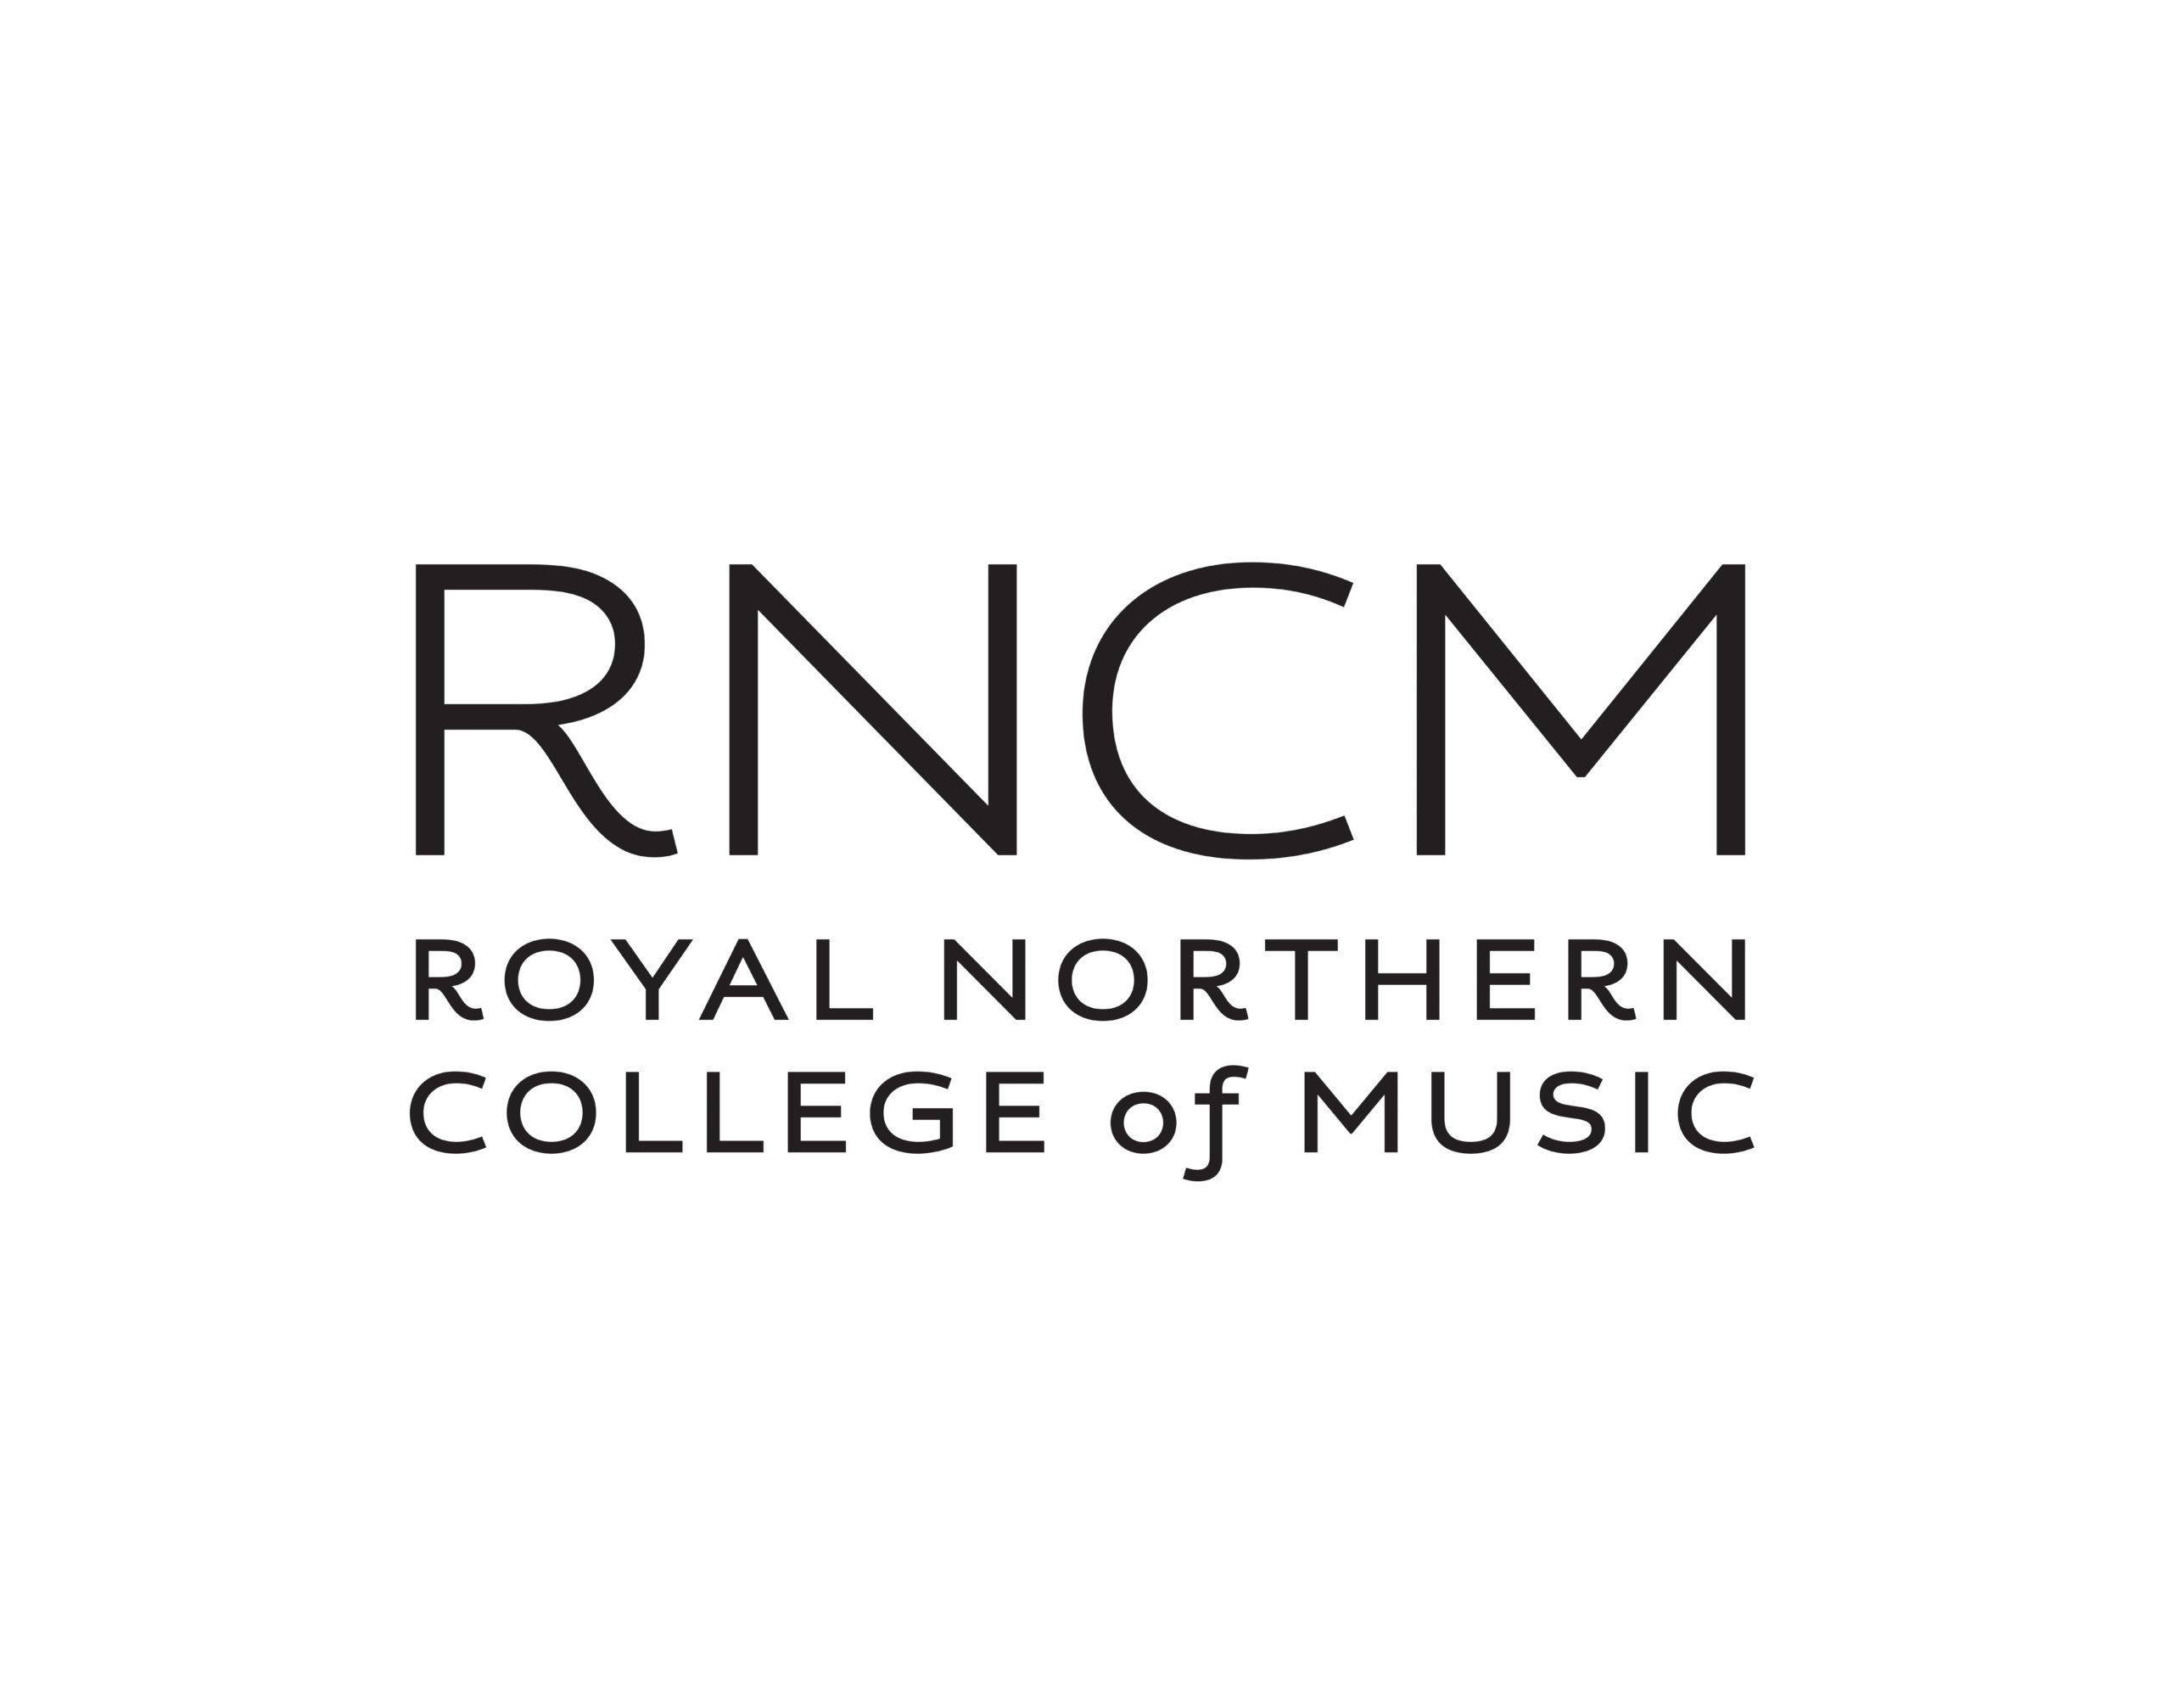 Dinner and tickets to a show at the Royal Northern College of Music